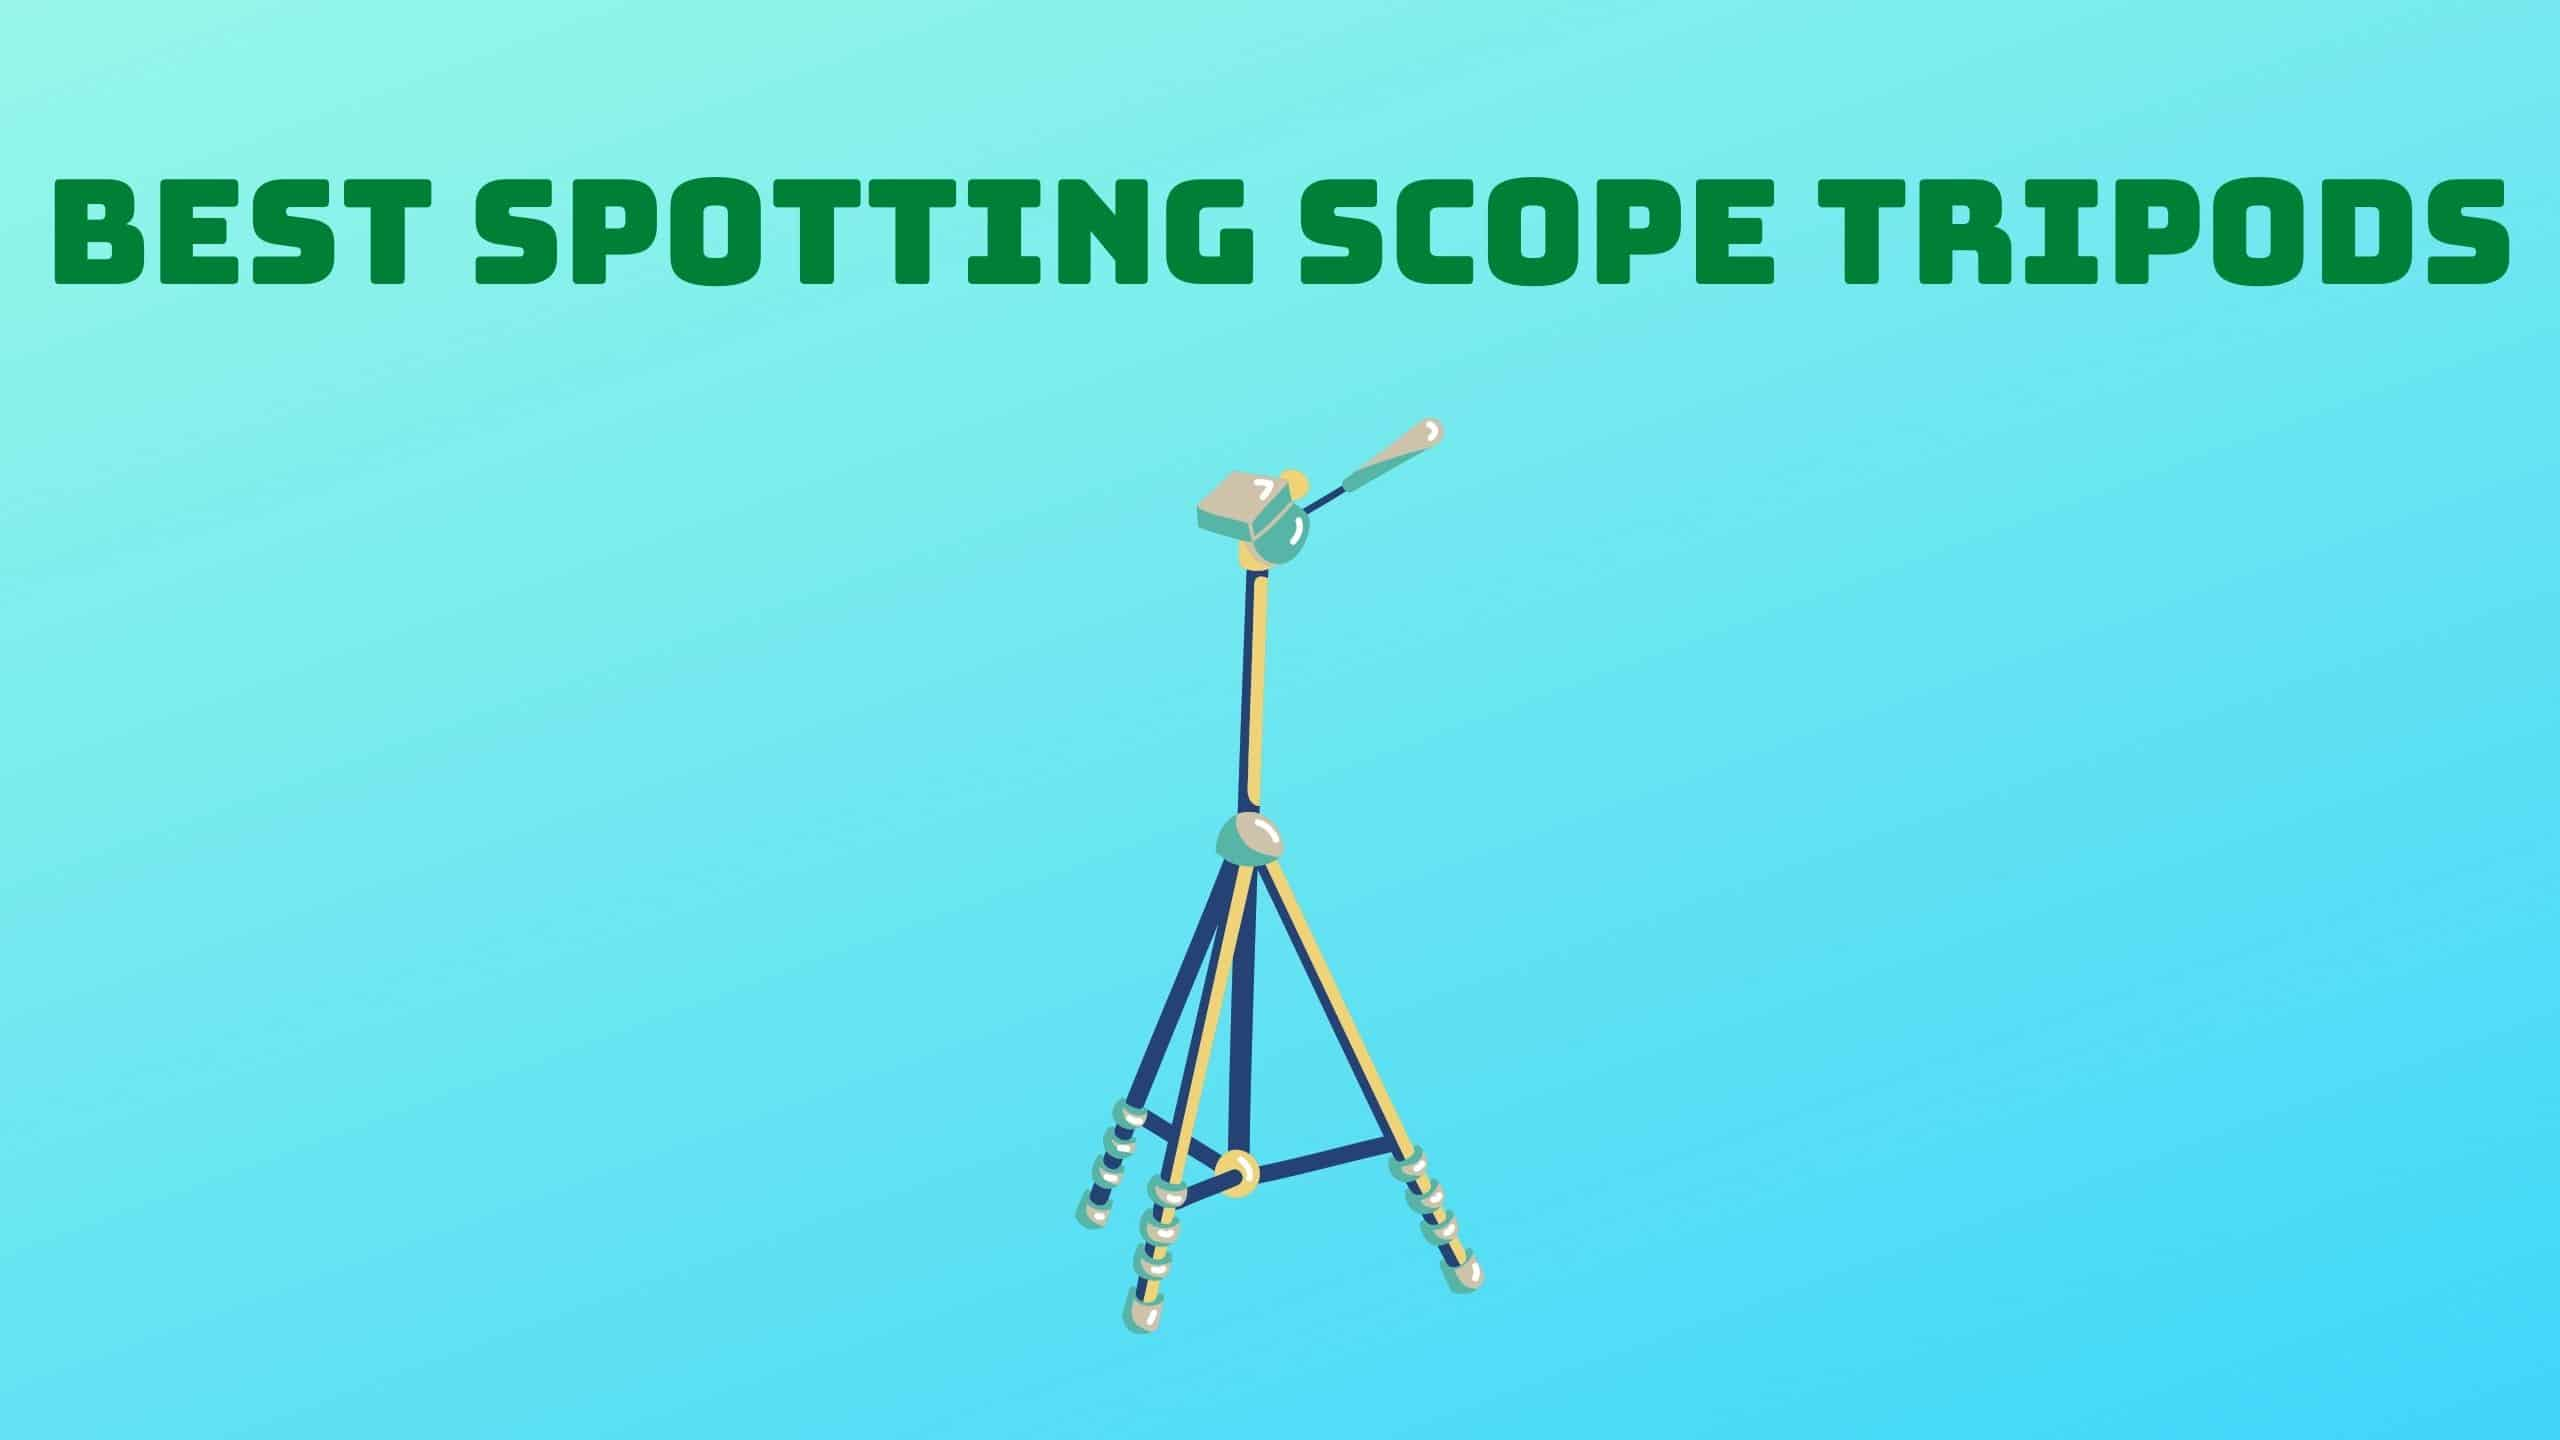 Best Spotting Scope Tripods (1)